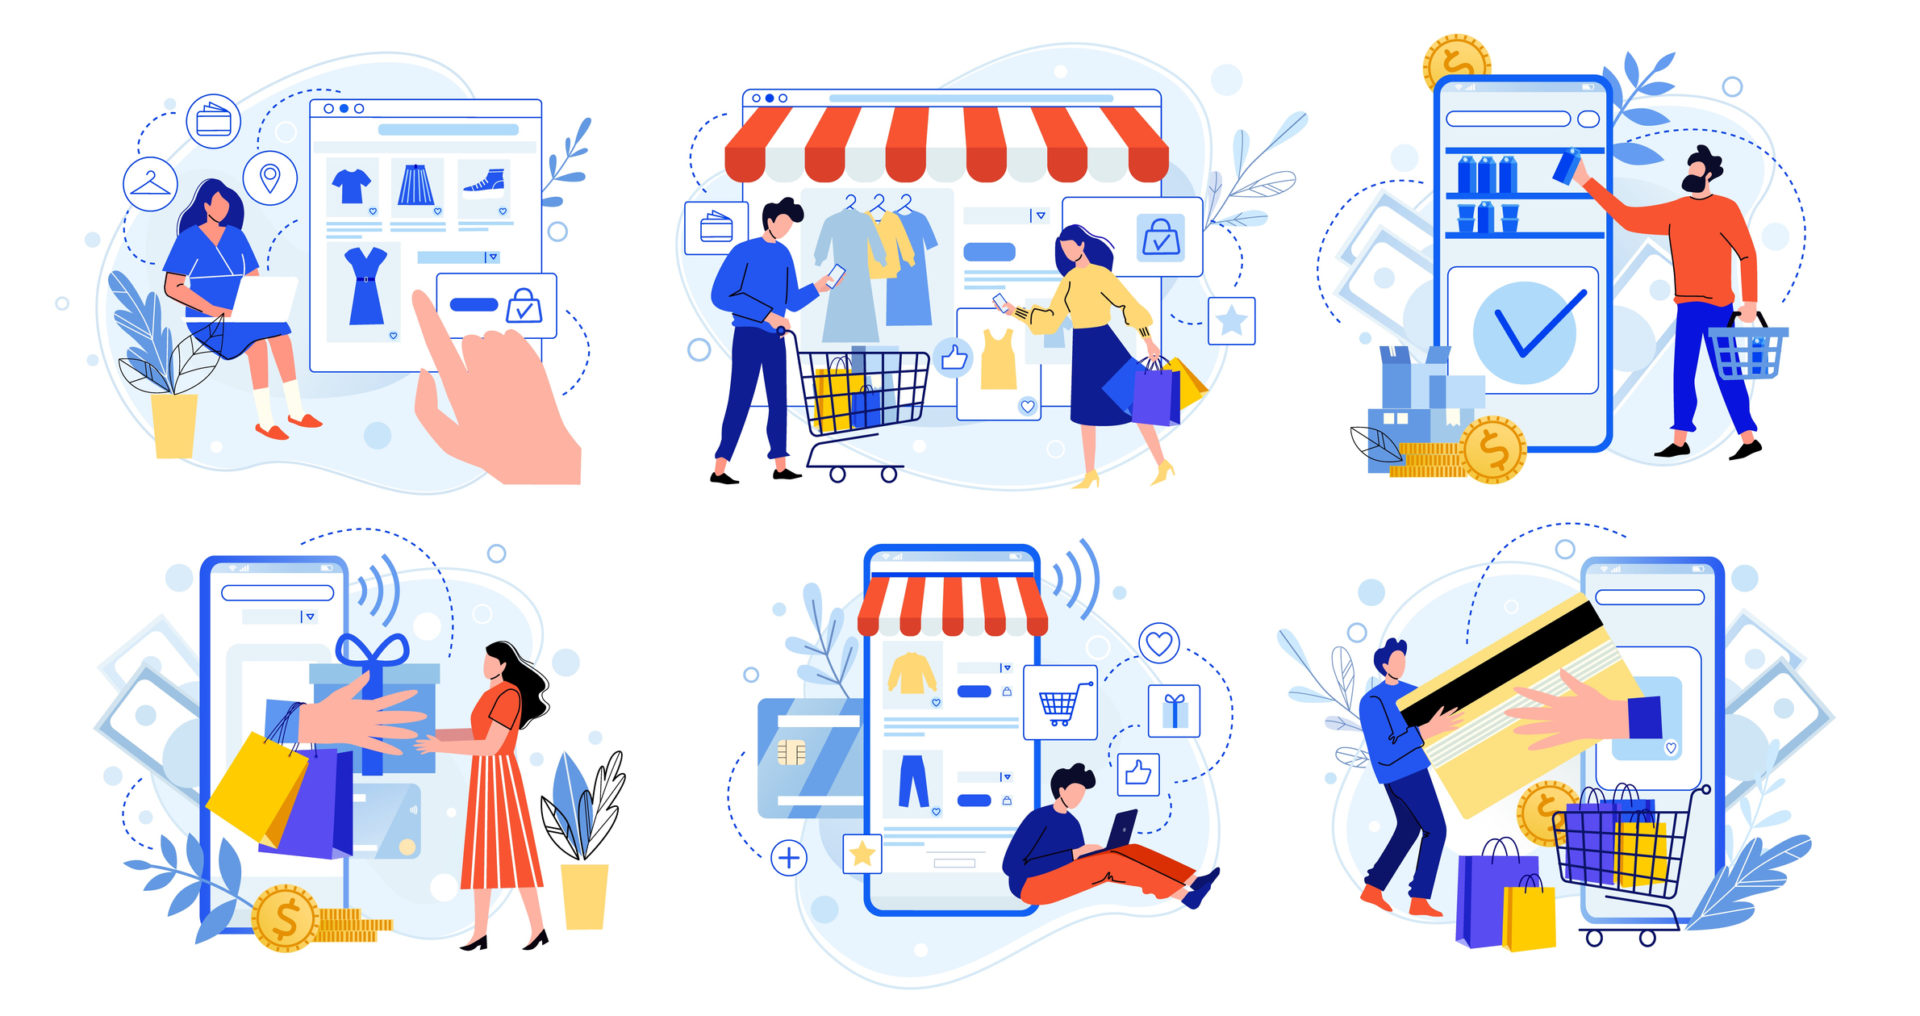 10 things to know about marketplaces